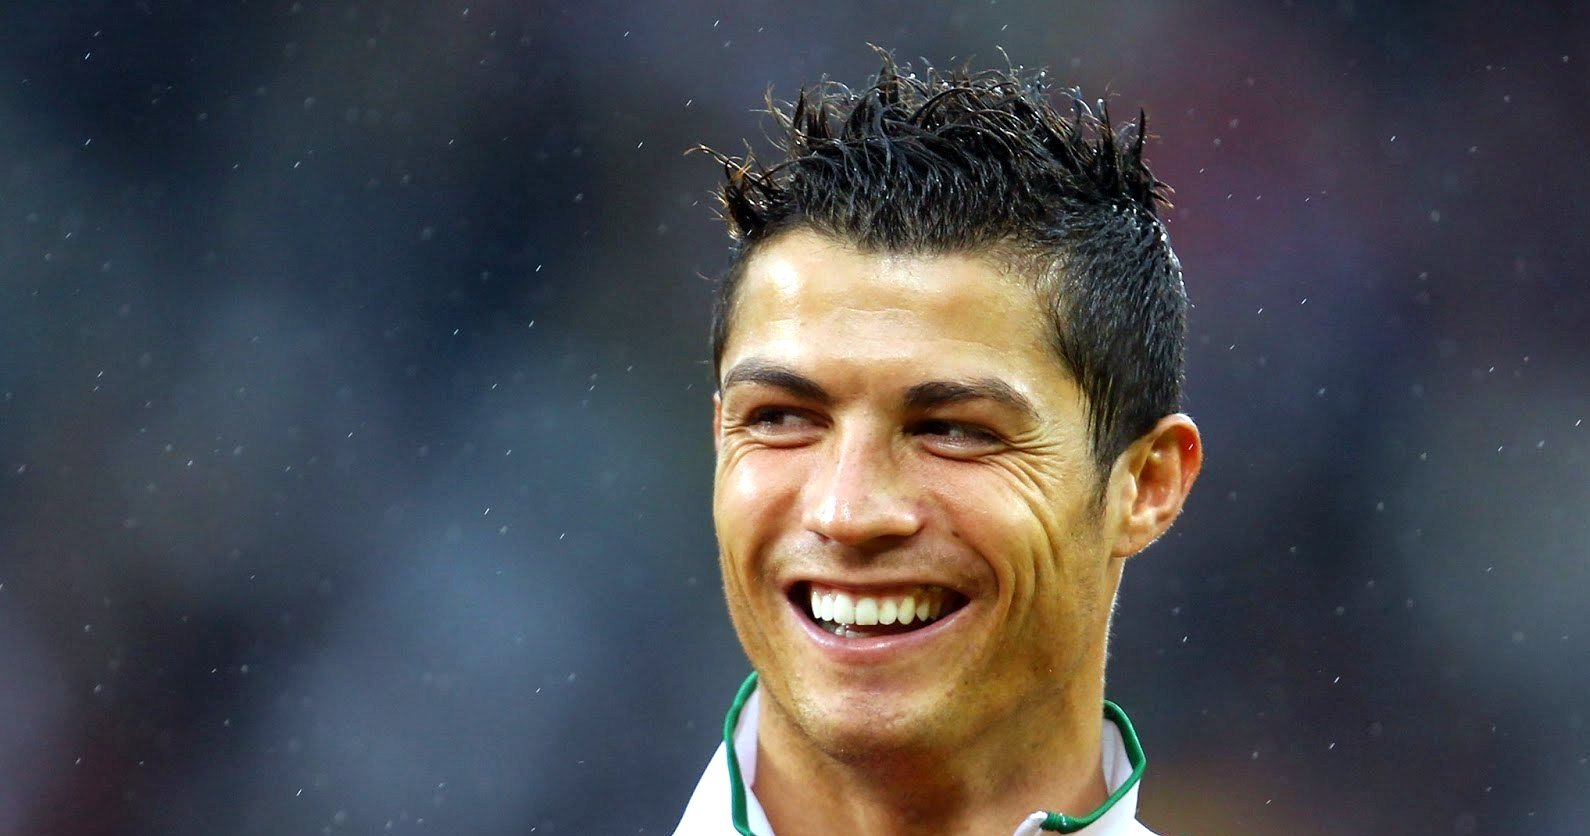 cr7 hairstyle